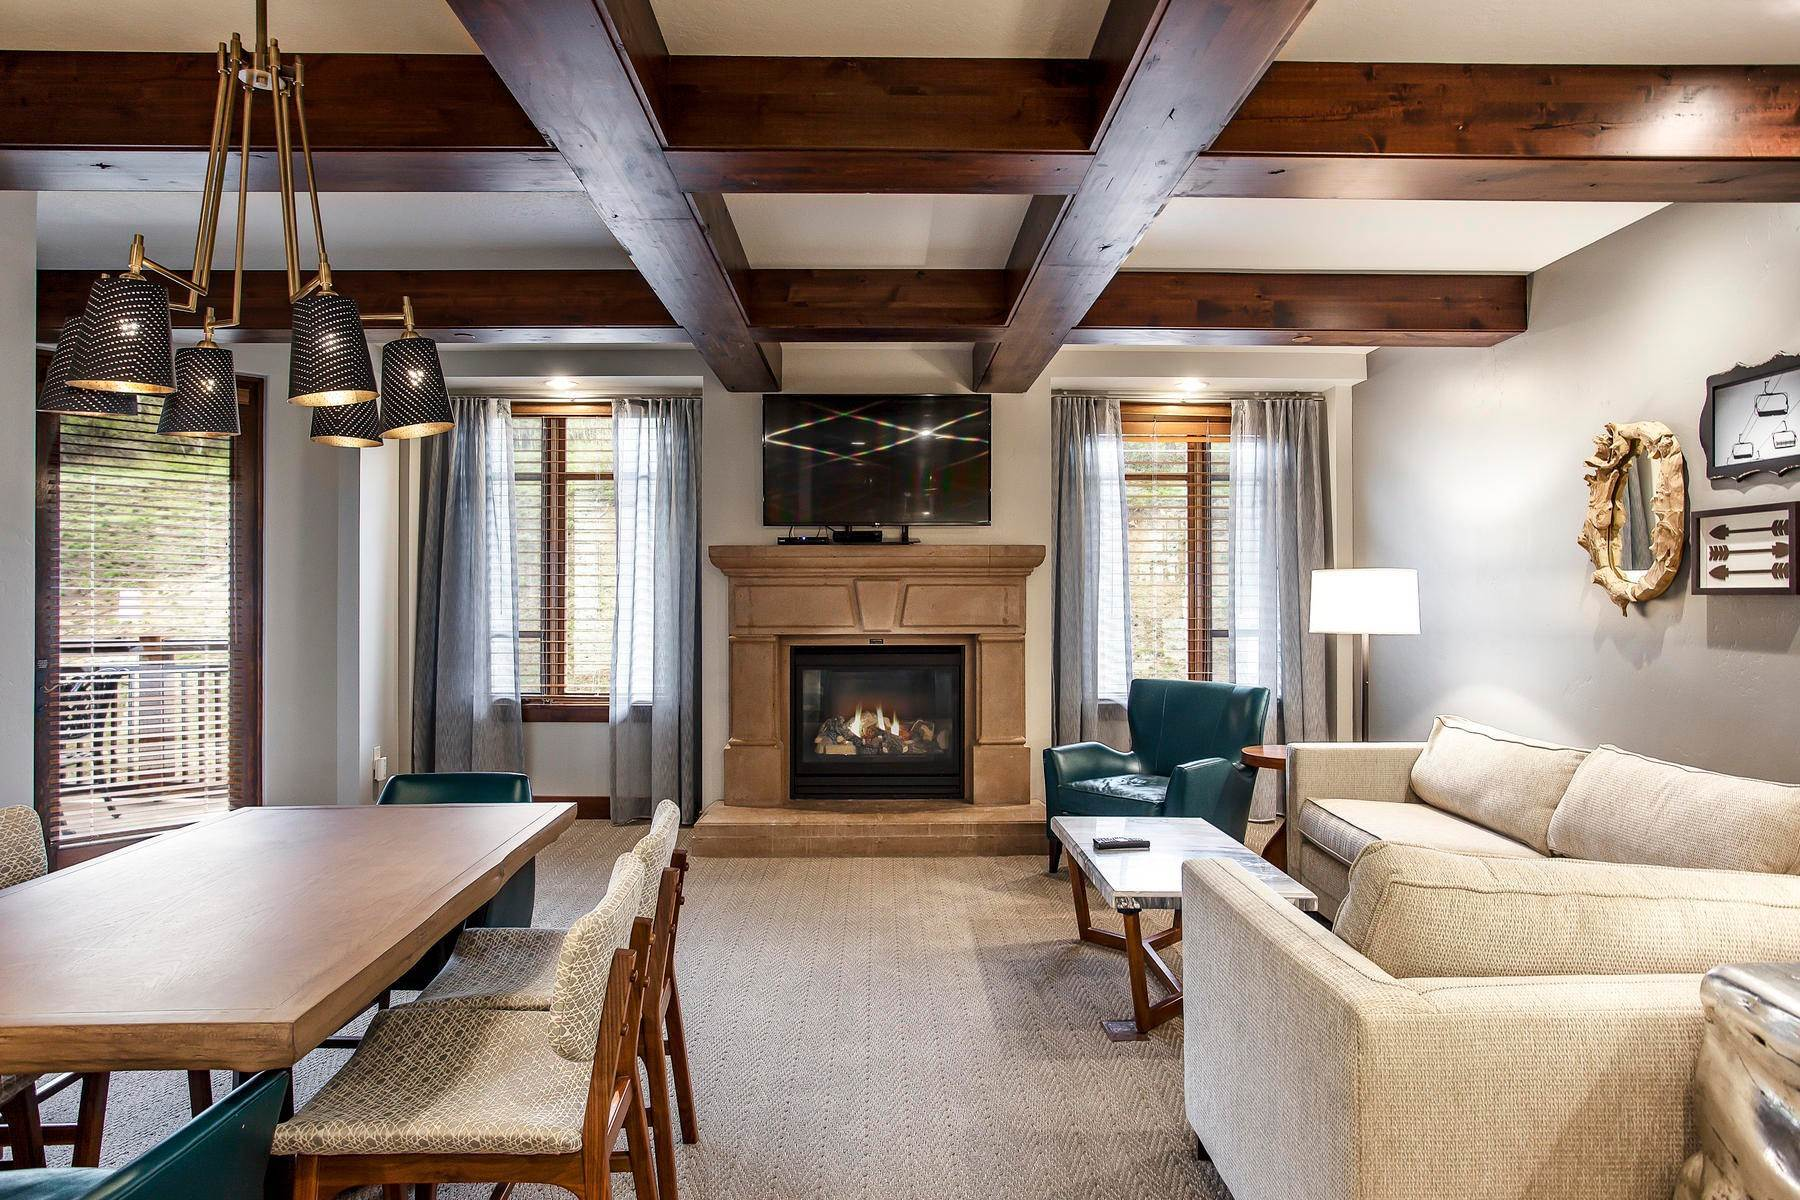 Condominiums for Sale at Fully Furnished Ski Condo 3551 N Escala Court #416 Park City, Utah 84098 United States